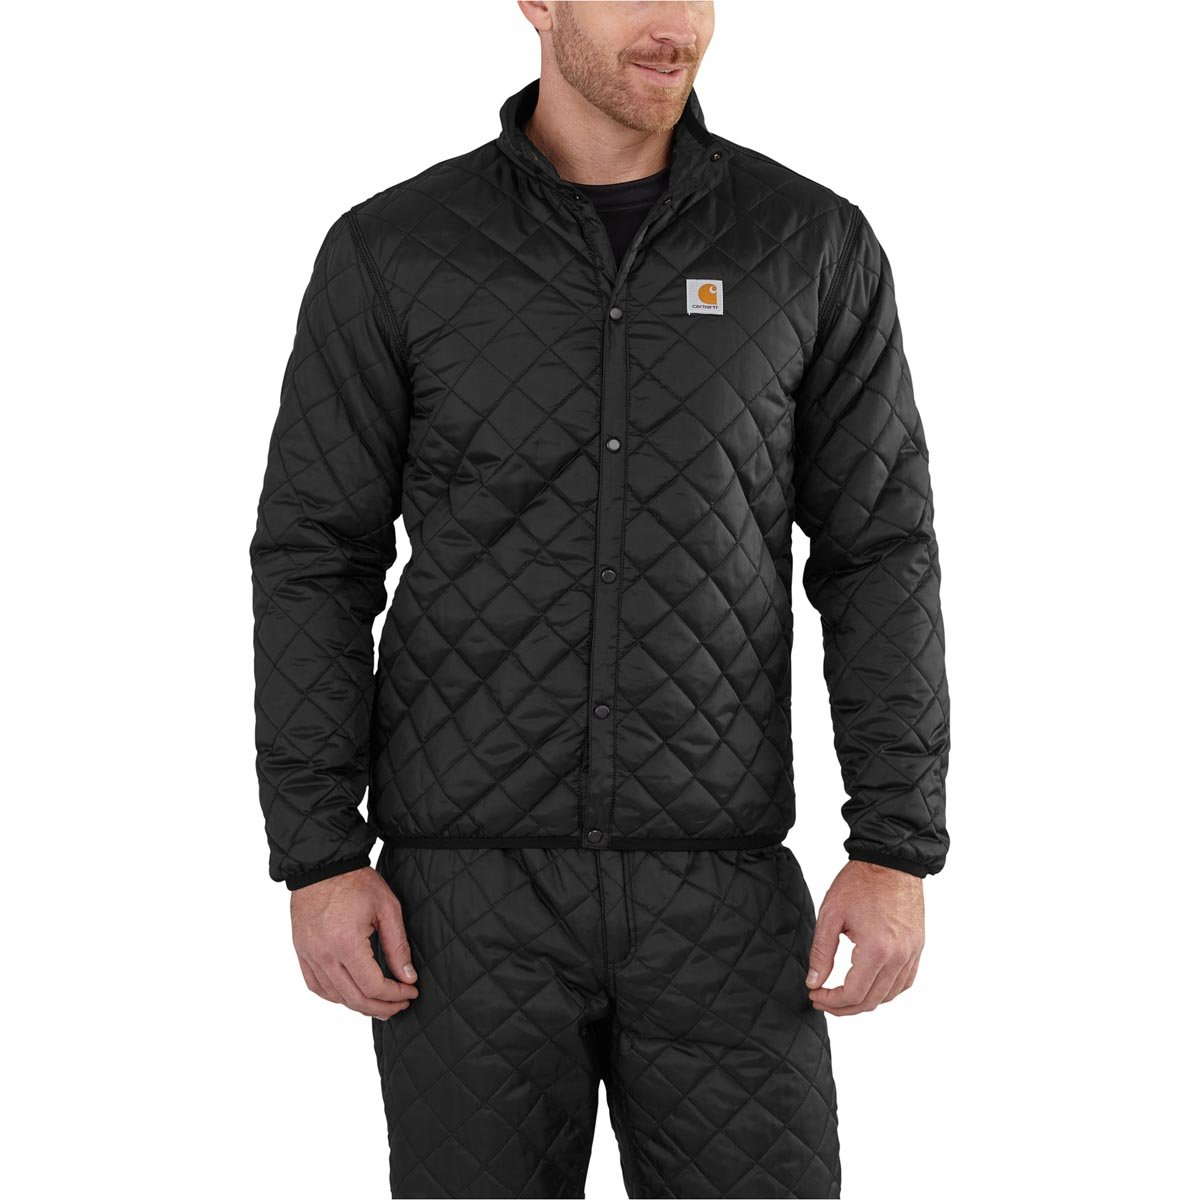 Carhartt Men's 102316 Yukon Quilted Base Layer Top